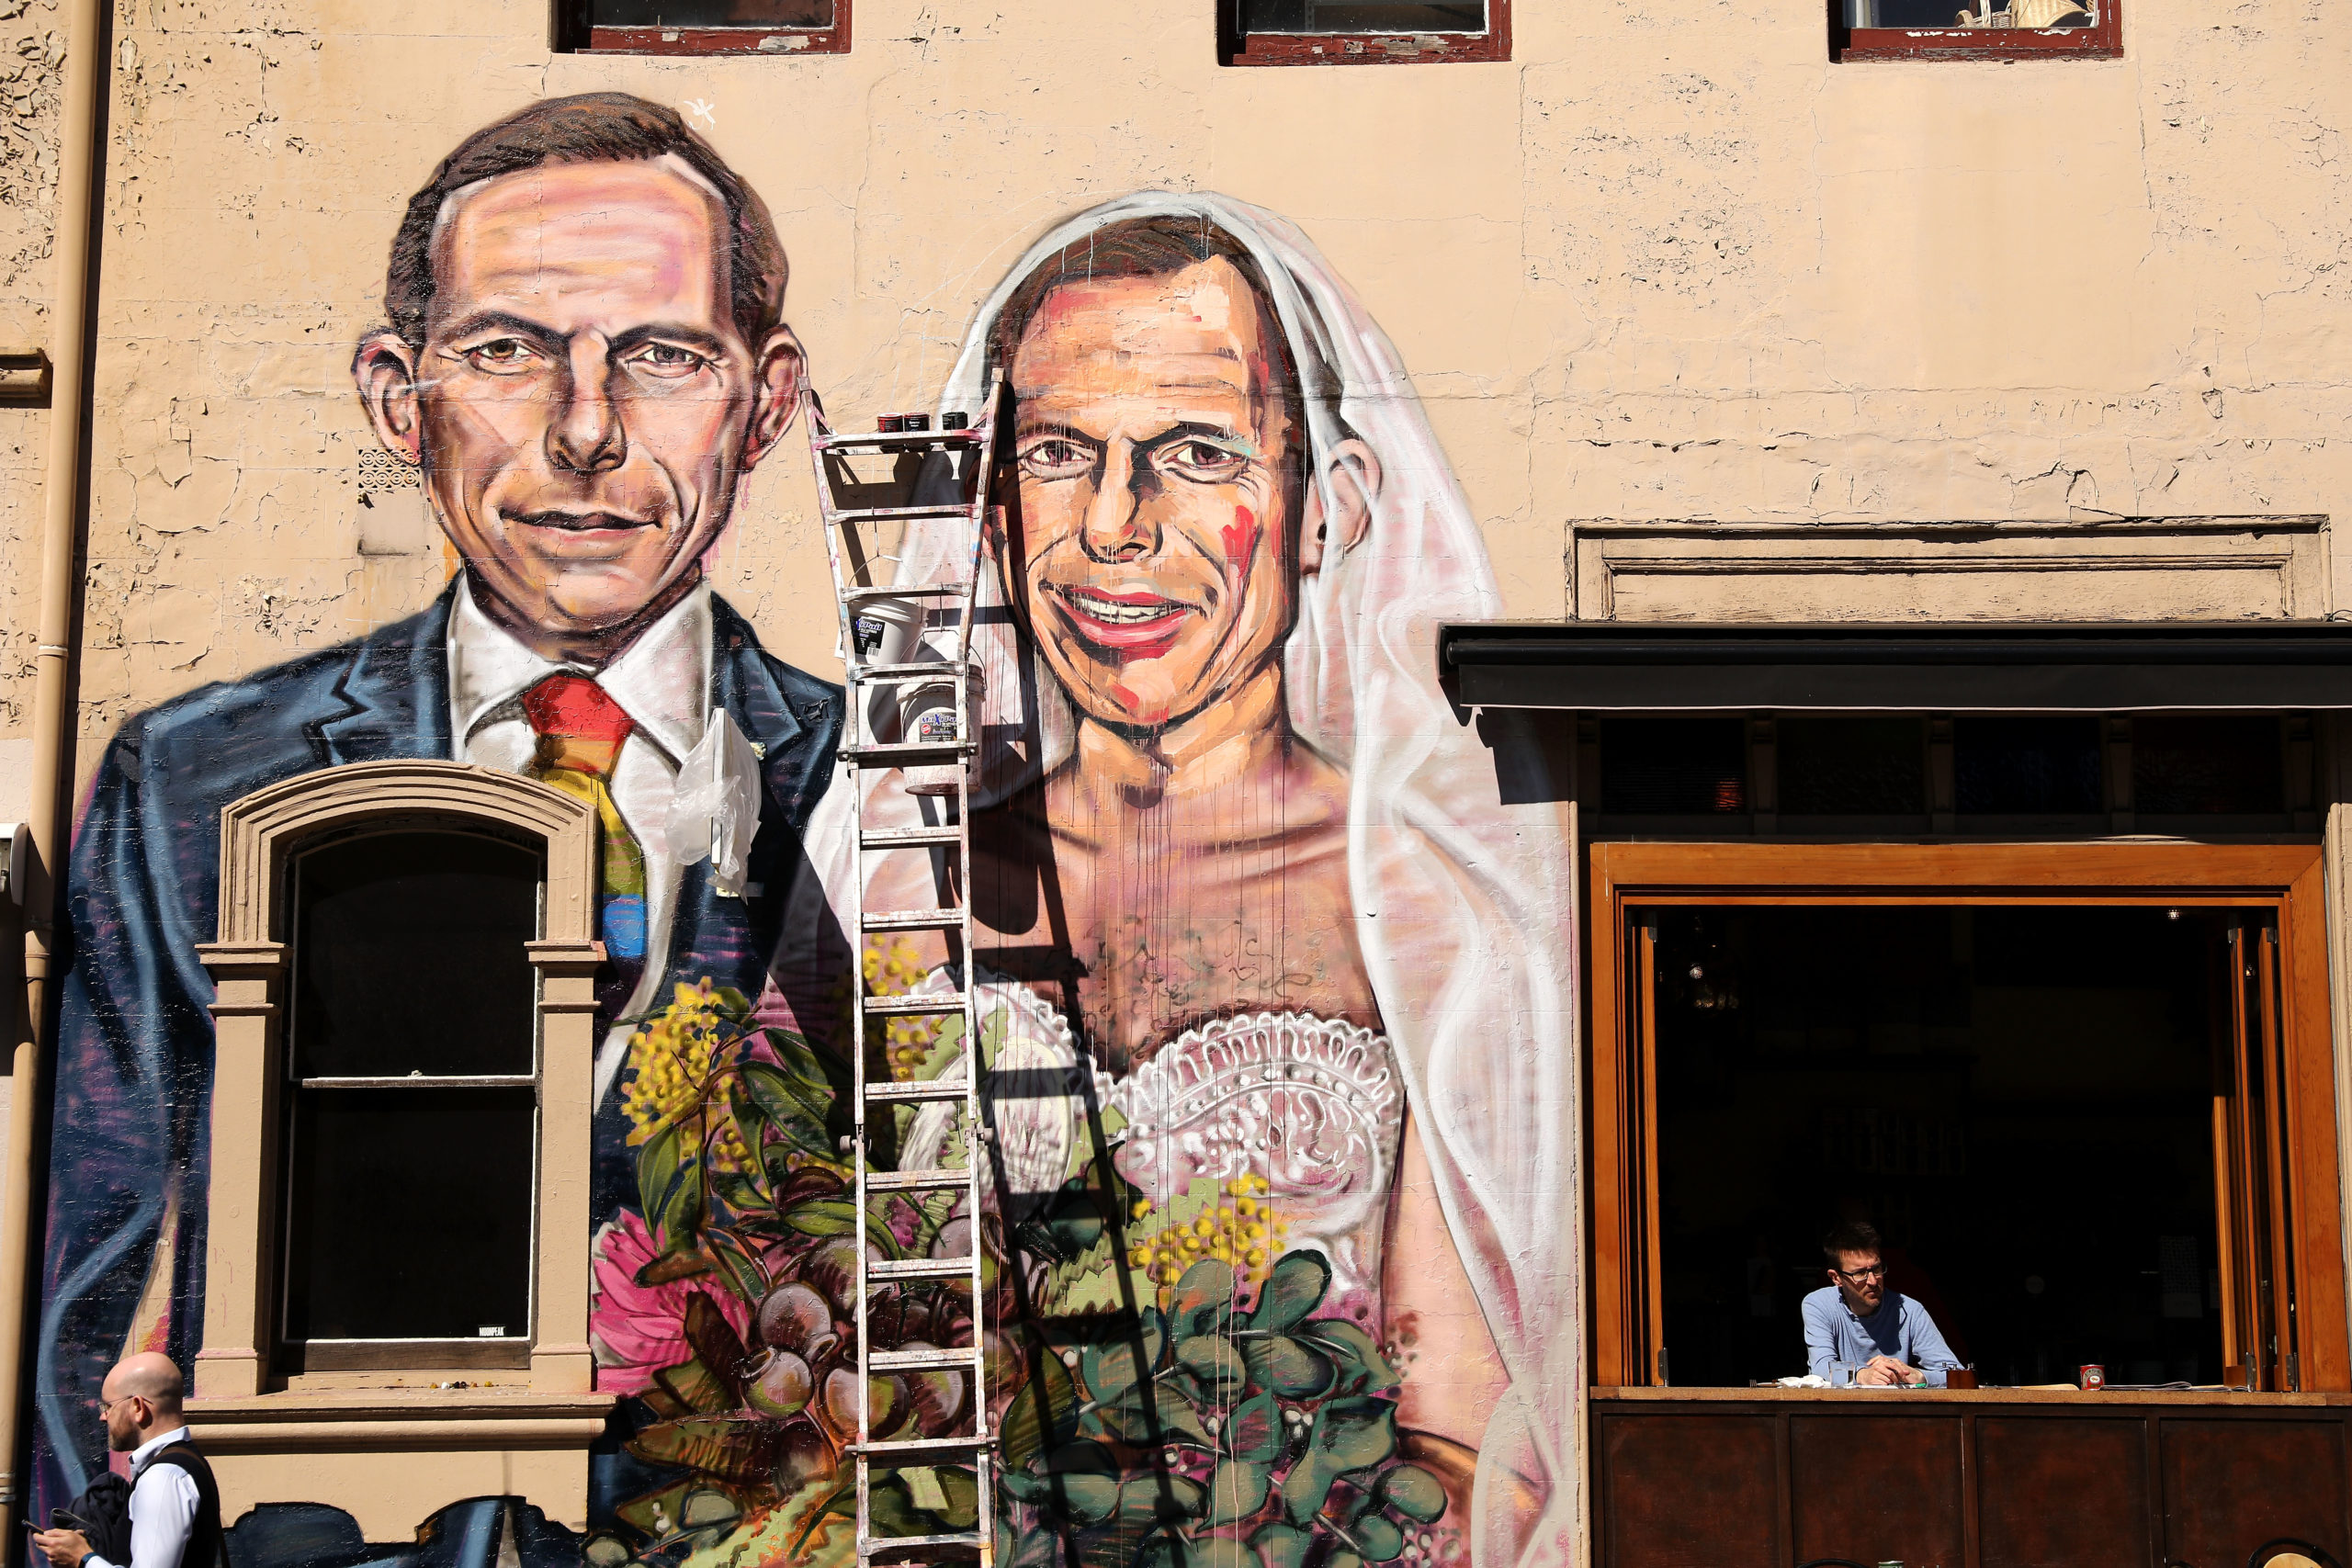 A mural by artist Scott Marsh depicting former Prime Minister Tony Abbott marrying himself